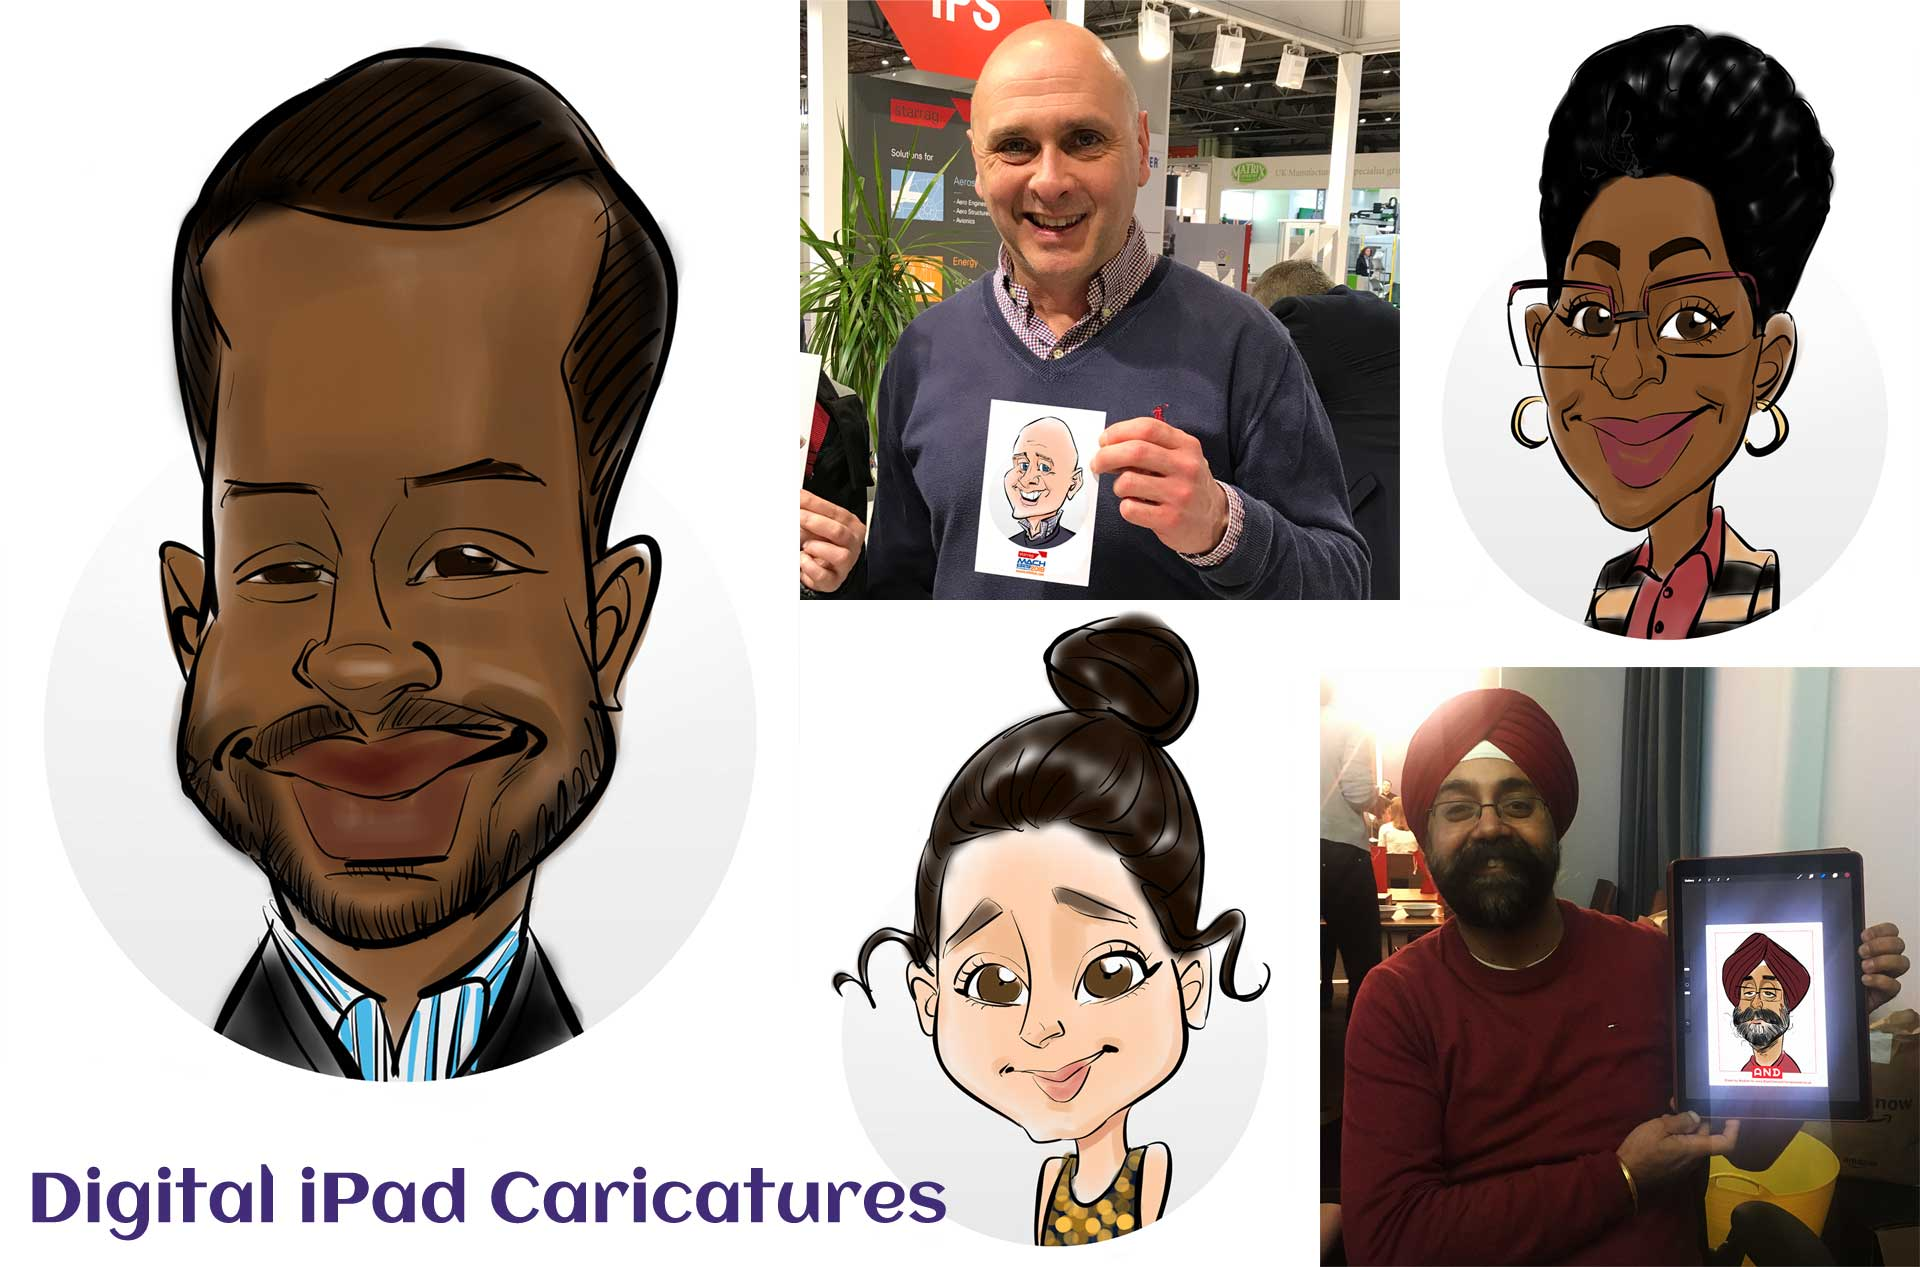 wedding ipad caricaturists